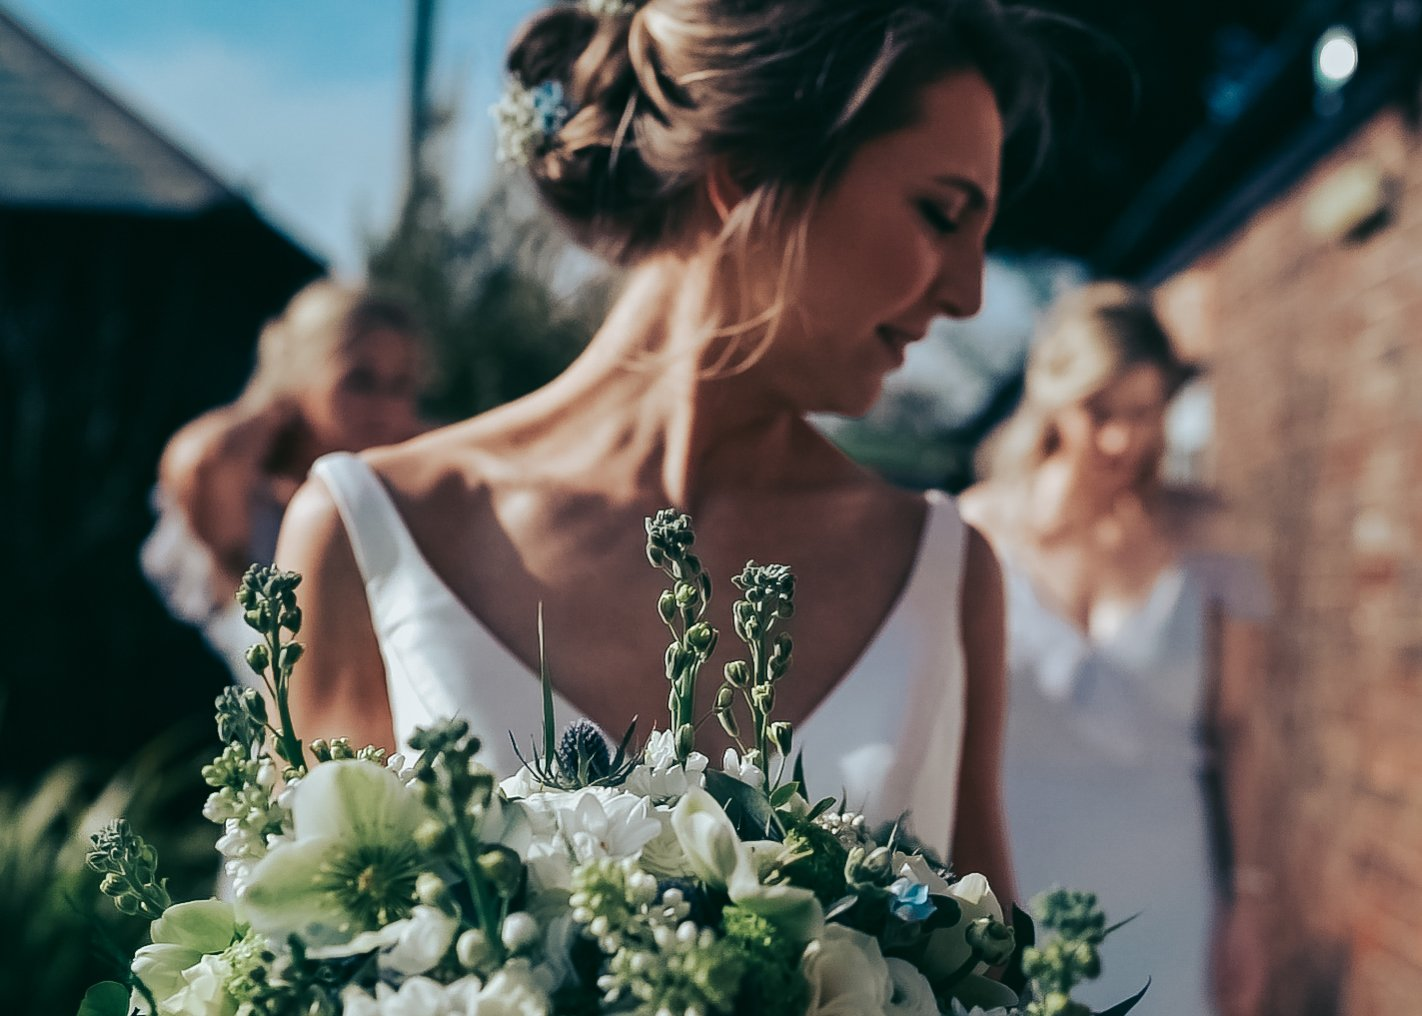 beautiful bridal bouquet Lady Lissy Florist Farbridge Sussex wedding photographer